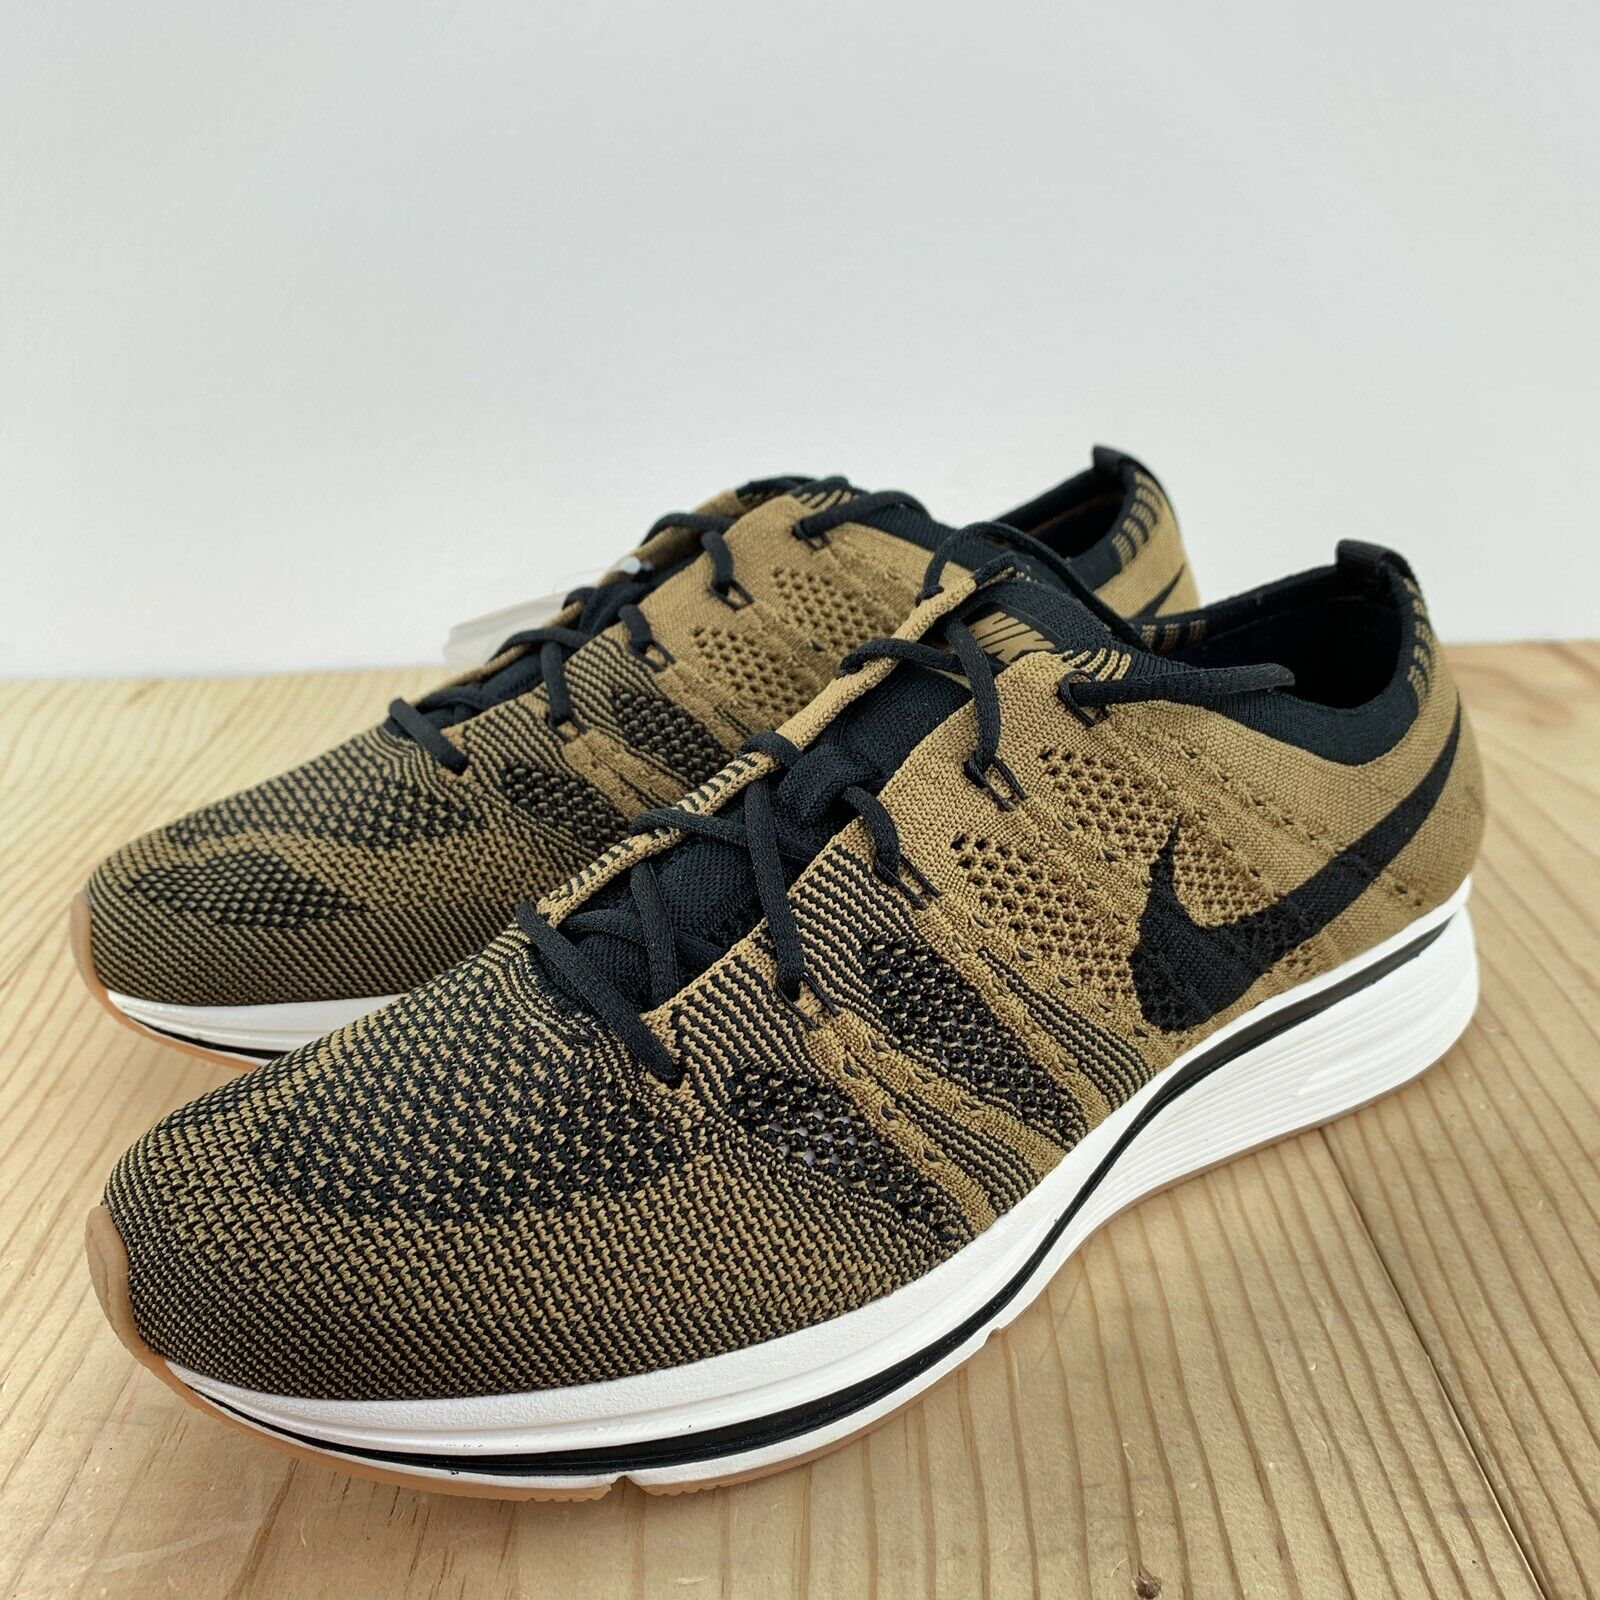 Nike Flyknit Trainer golden Beige Size 8 gold Black Mens Running shoes